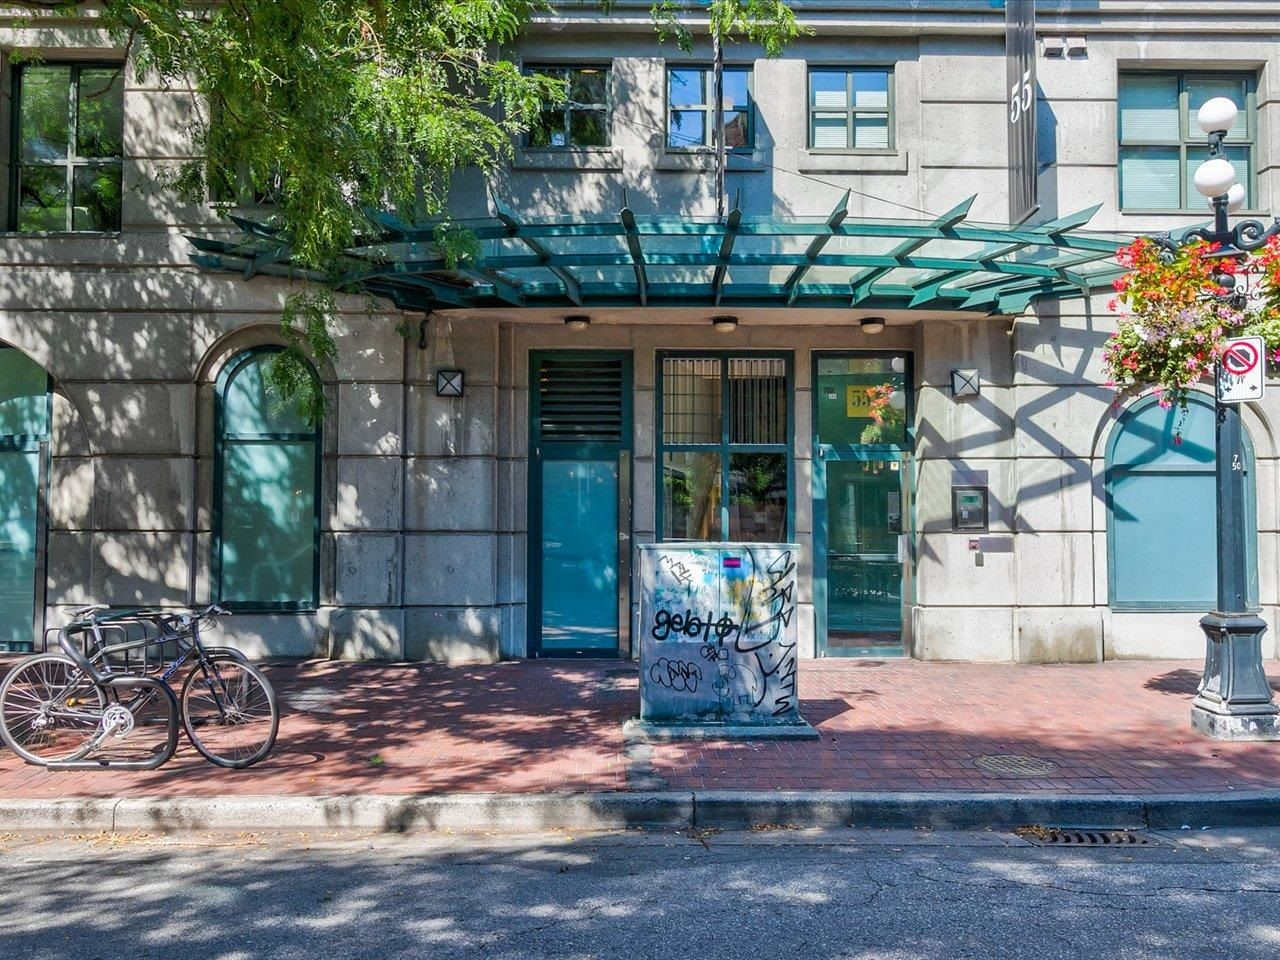 """Main Photo: 403 55 ALEXANDER Street in Vancouver: Downtown VE Condo for sale in """"55 Alexander"""" (Vancouver East)  : MLS®# R2614776"""